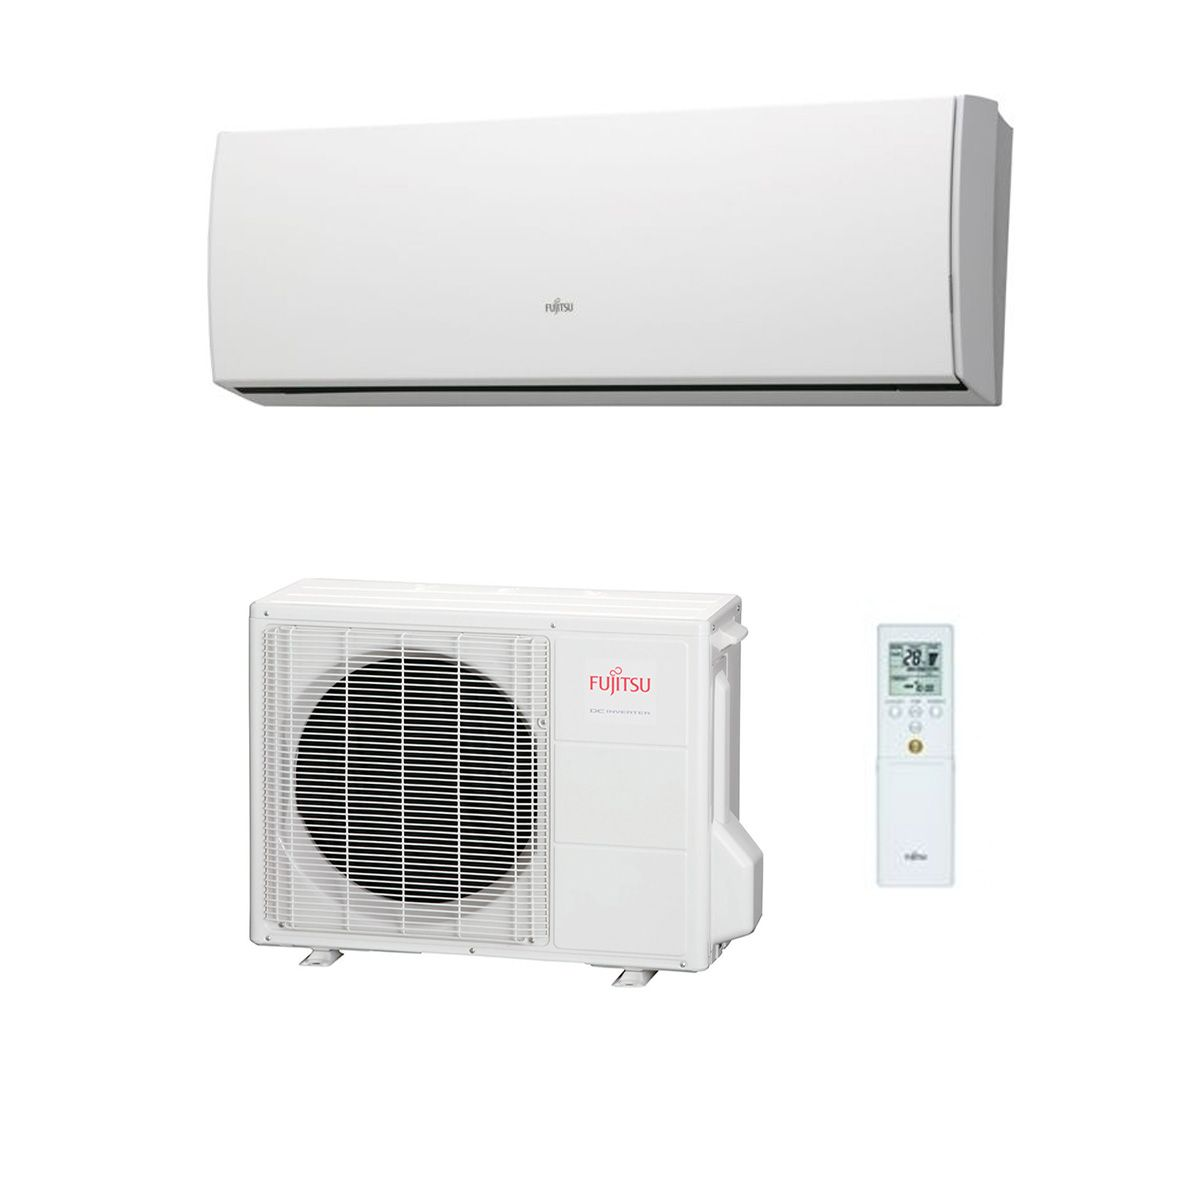 Fujitsu Air Conditioning Asyg09luca Wall Mounted Heat Pump